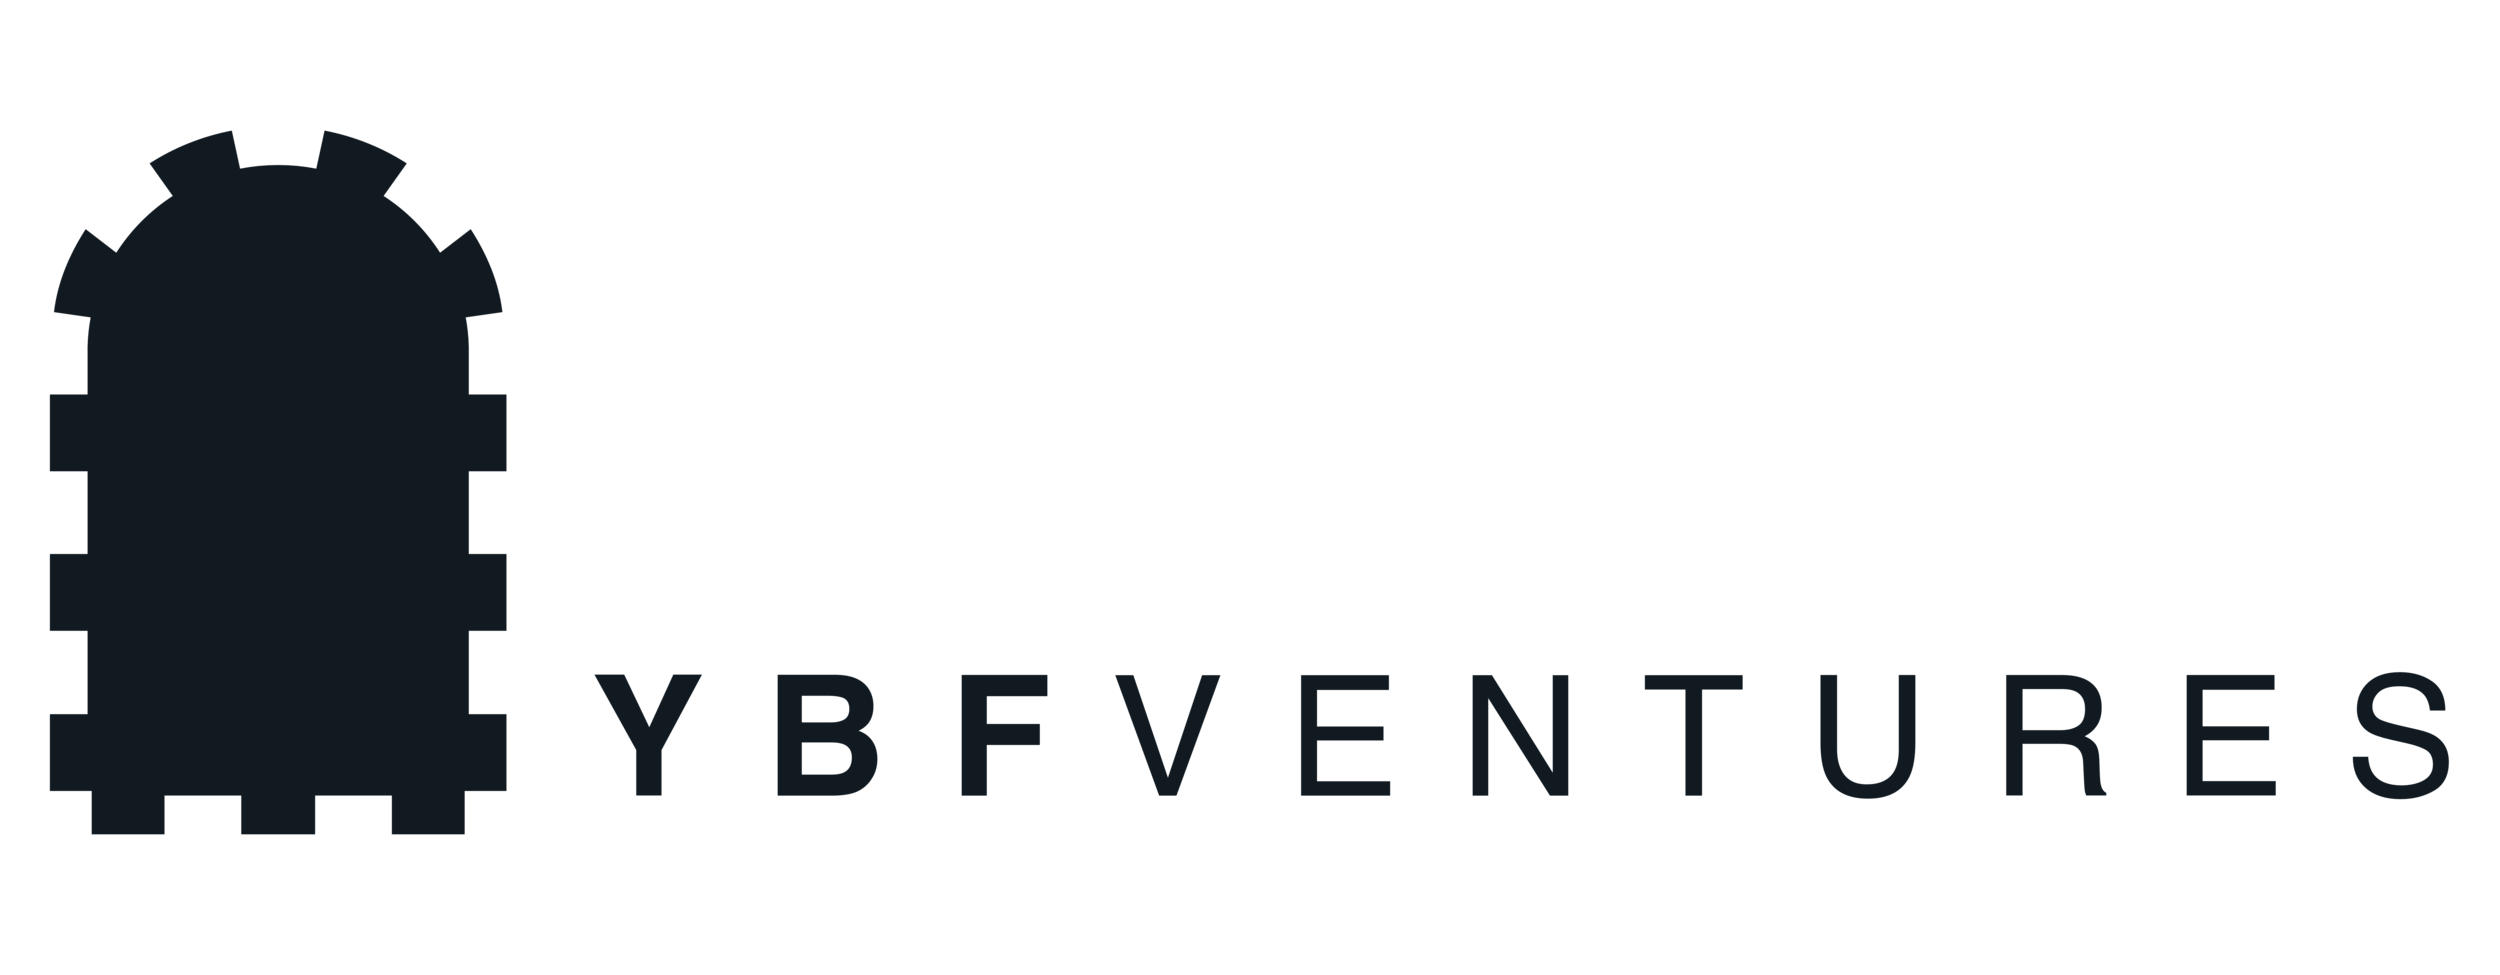 Thank you to YBF ventures for supporting women of colour. -